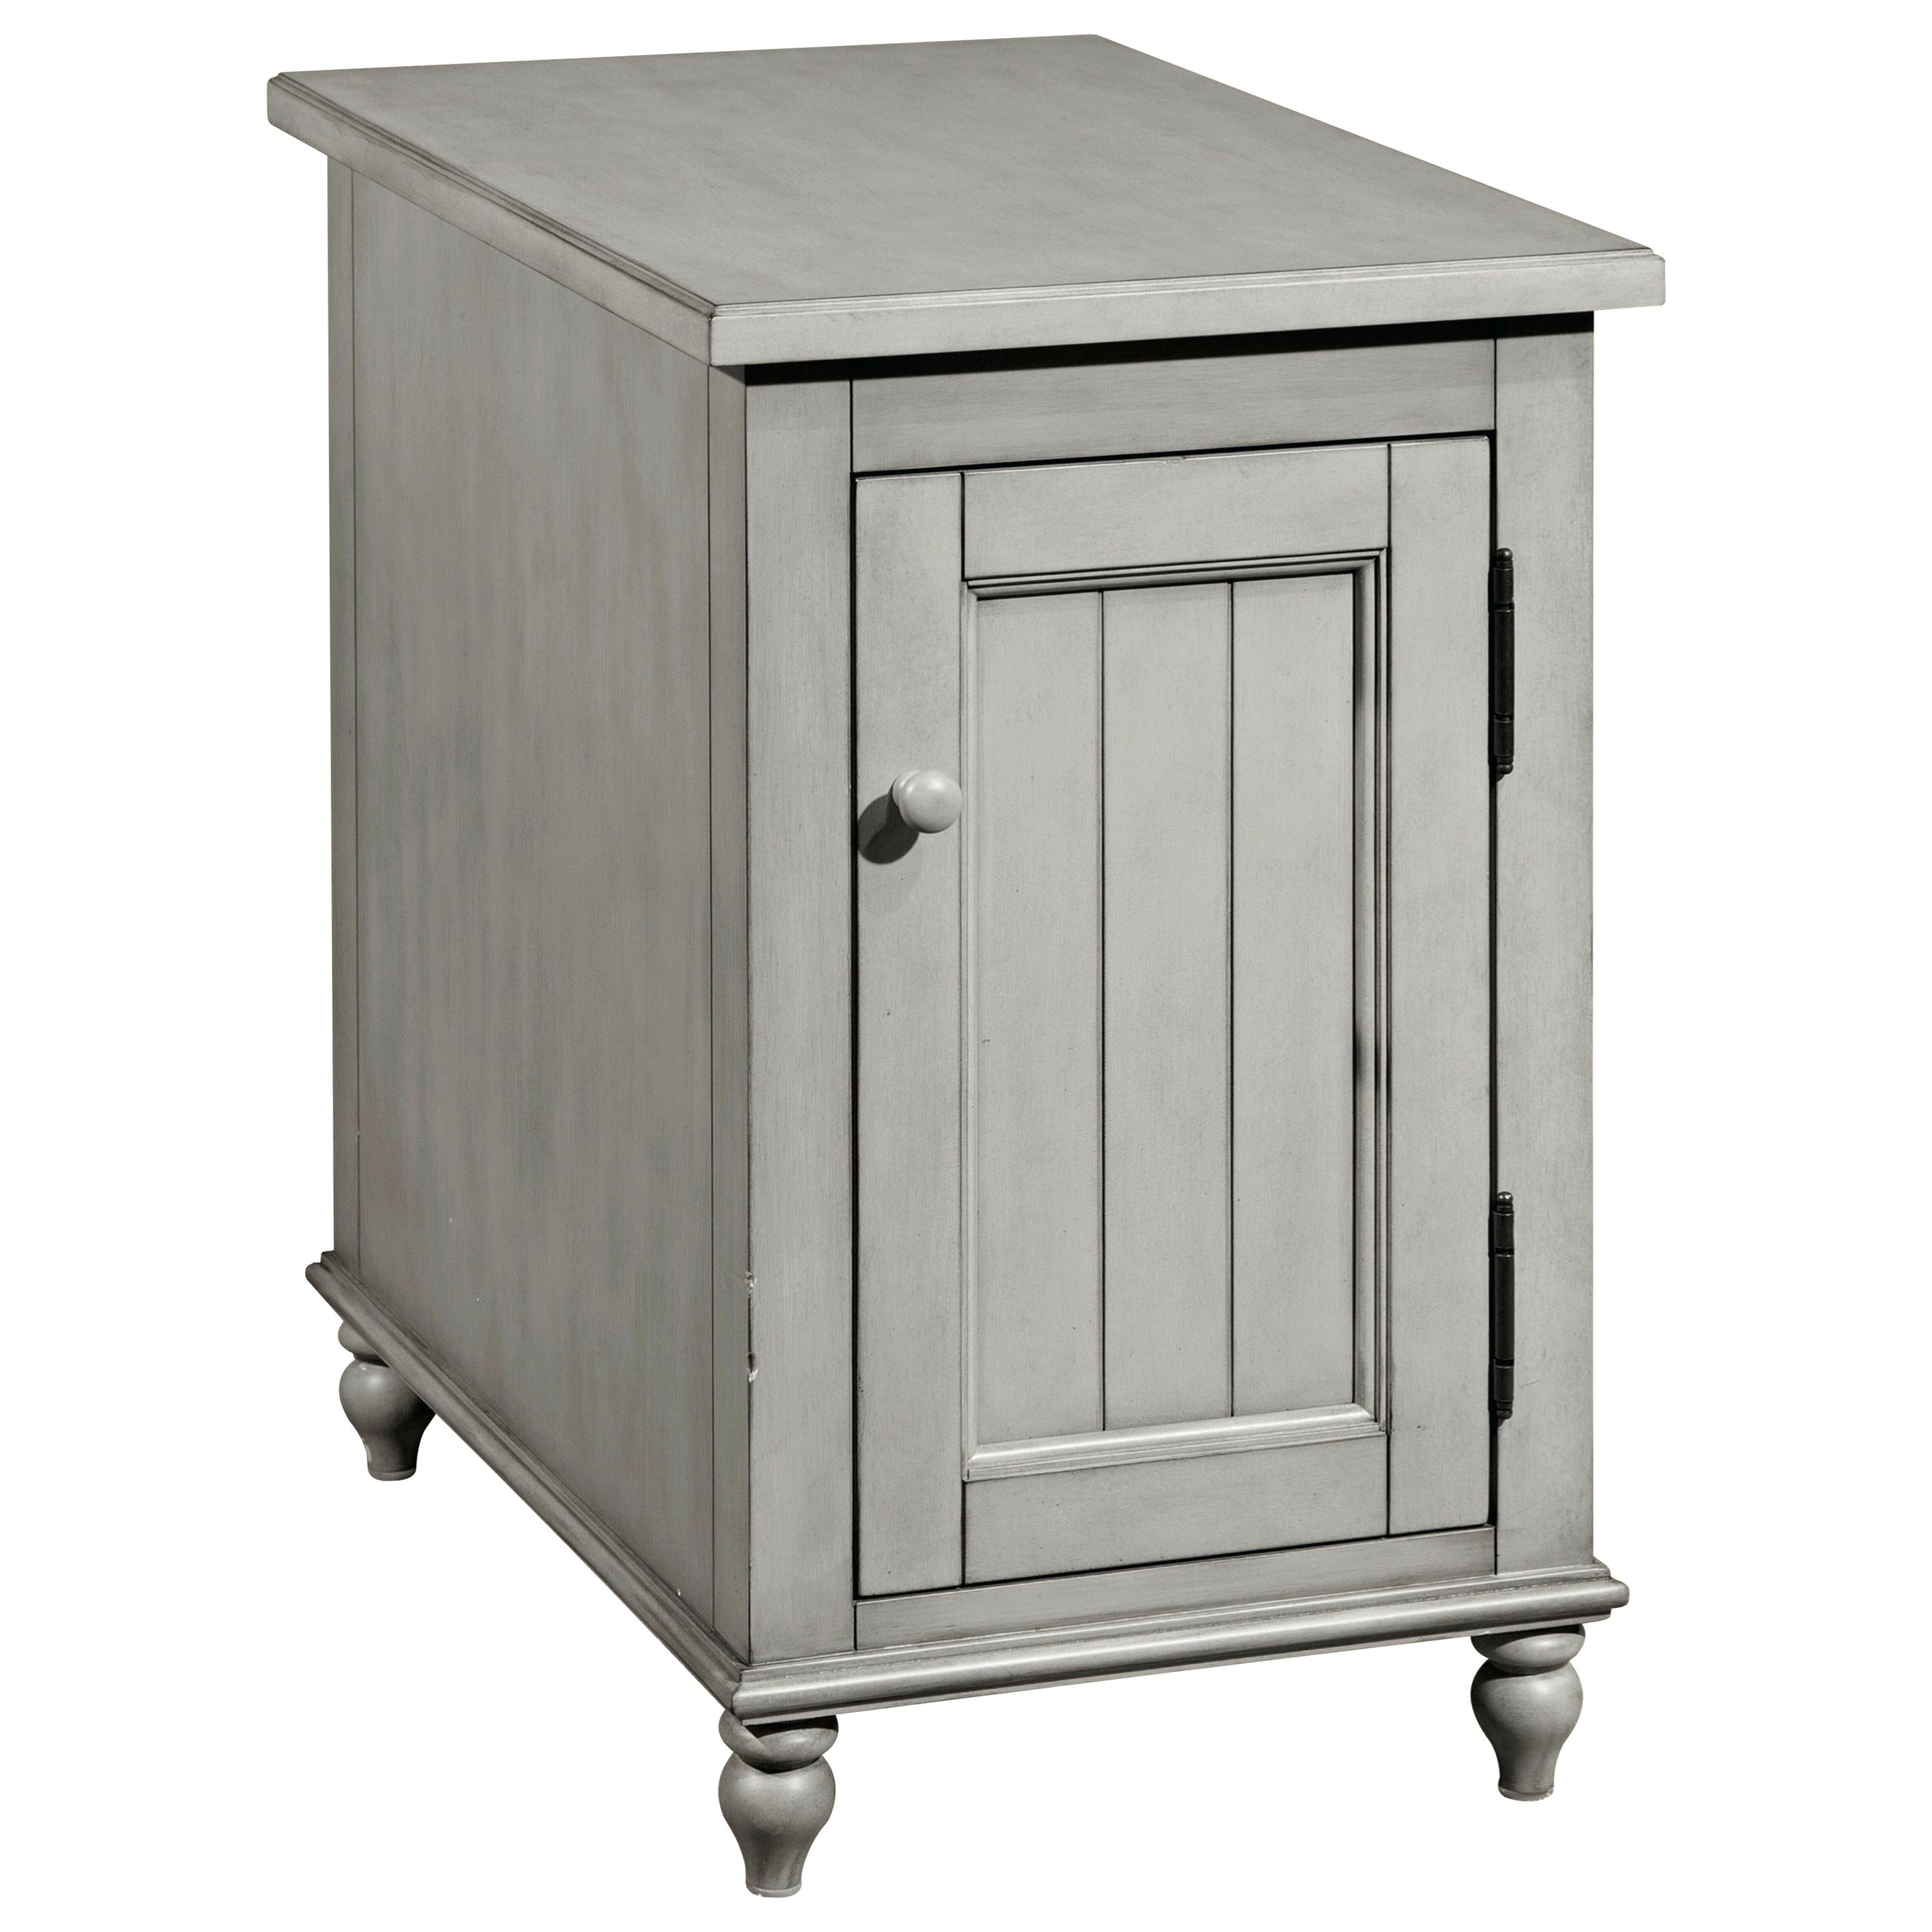 grey accent table gray tables distressed furniture target wood marble auckland outdoor patio clearance round tablecloth glass and chrome side sea decor white pedestal end ikea toy